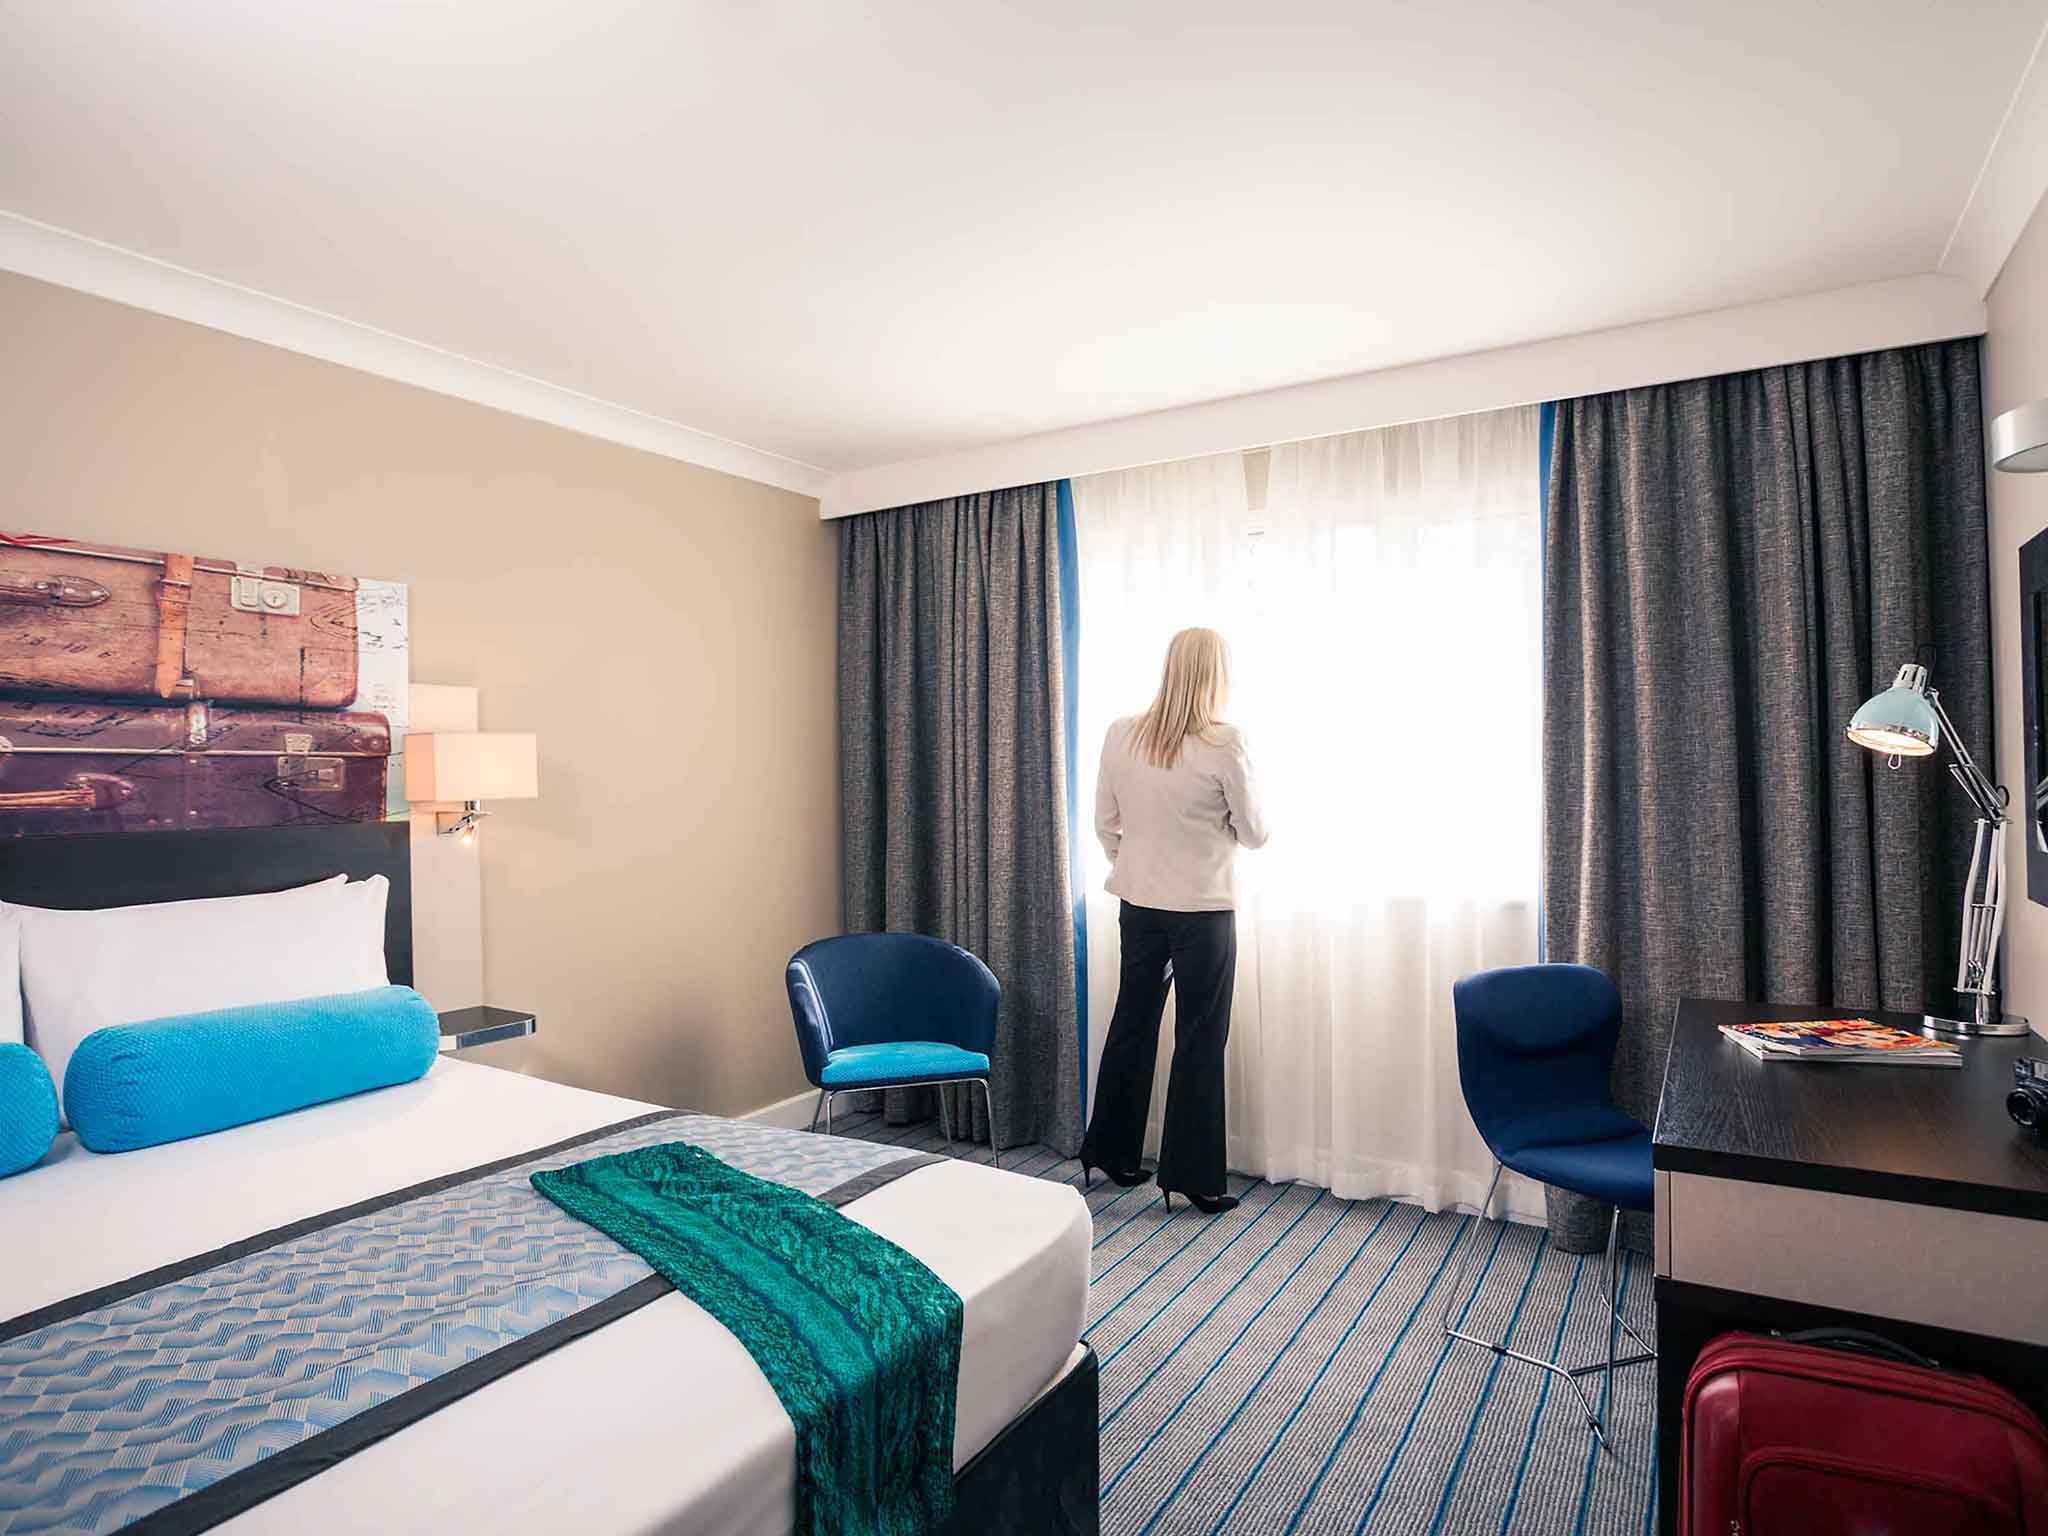 Hotel em londres mercure london heathrow for Hotel adagio londres